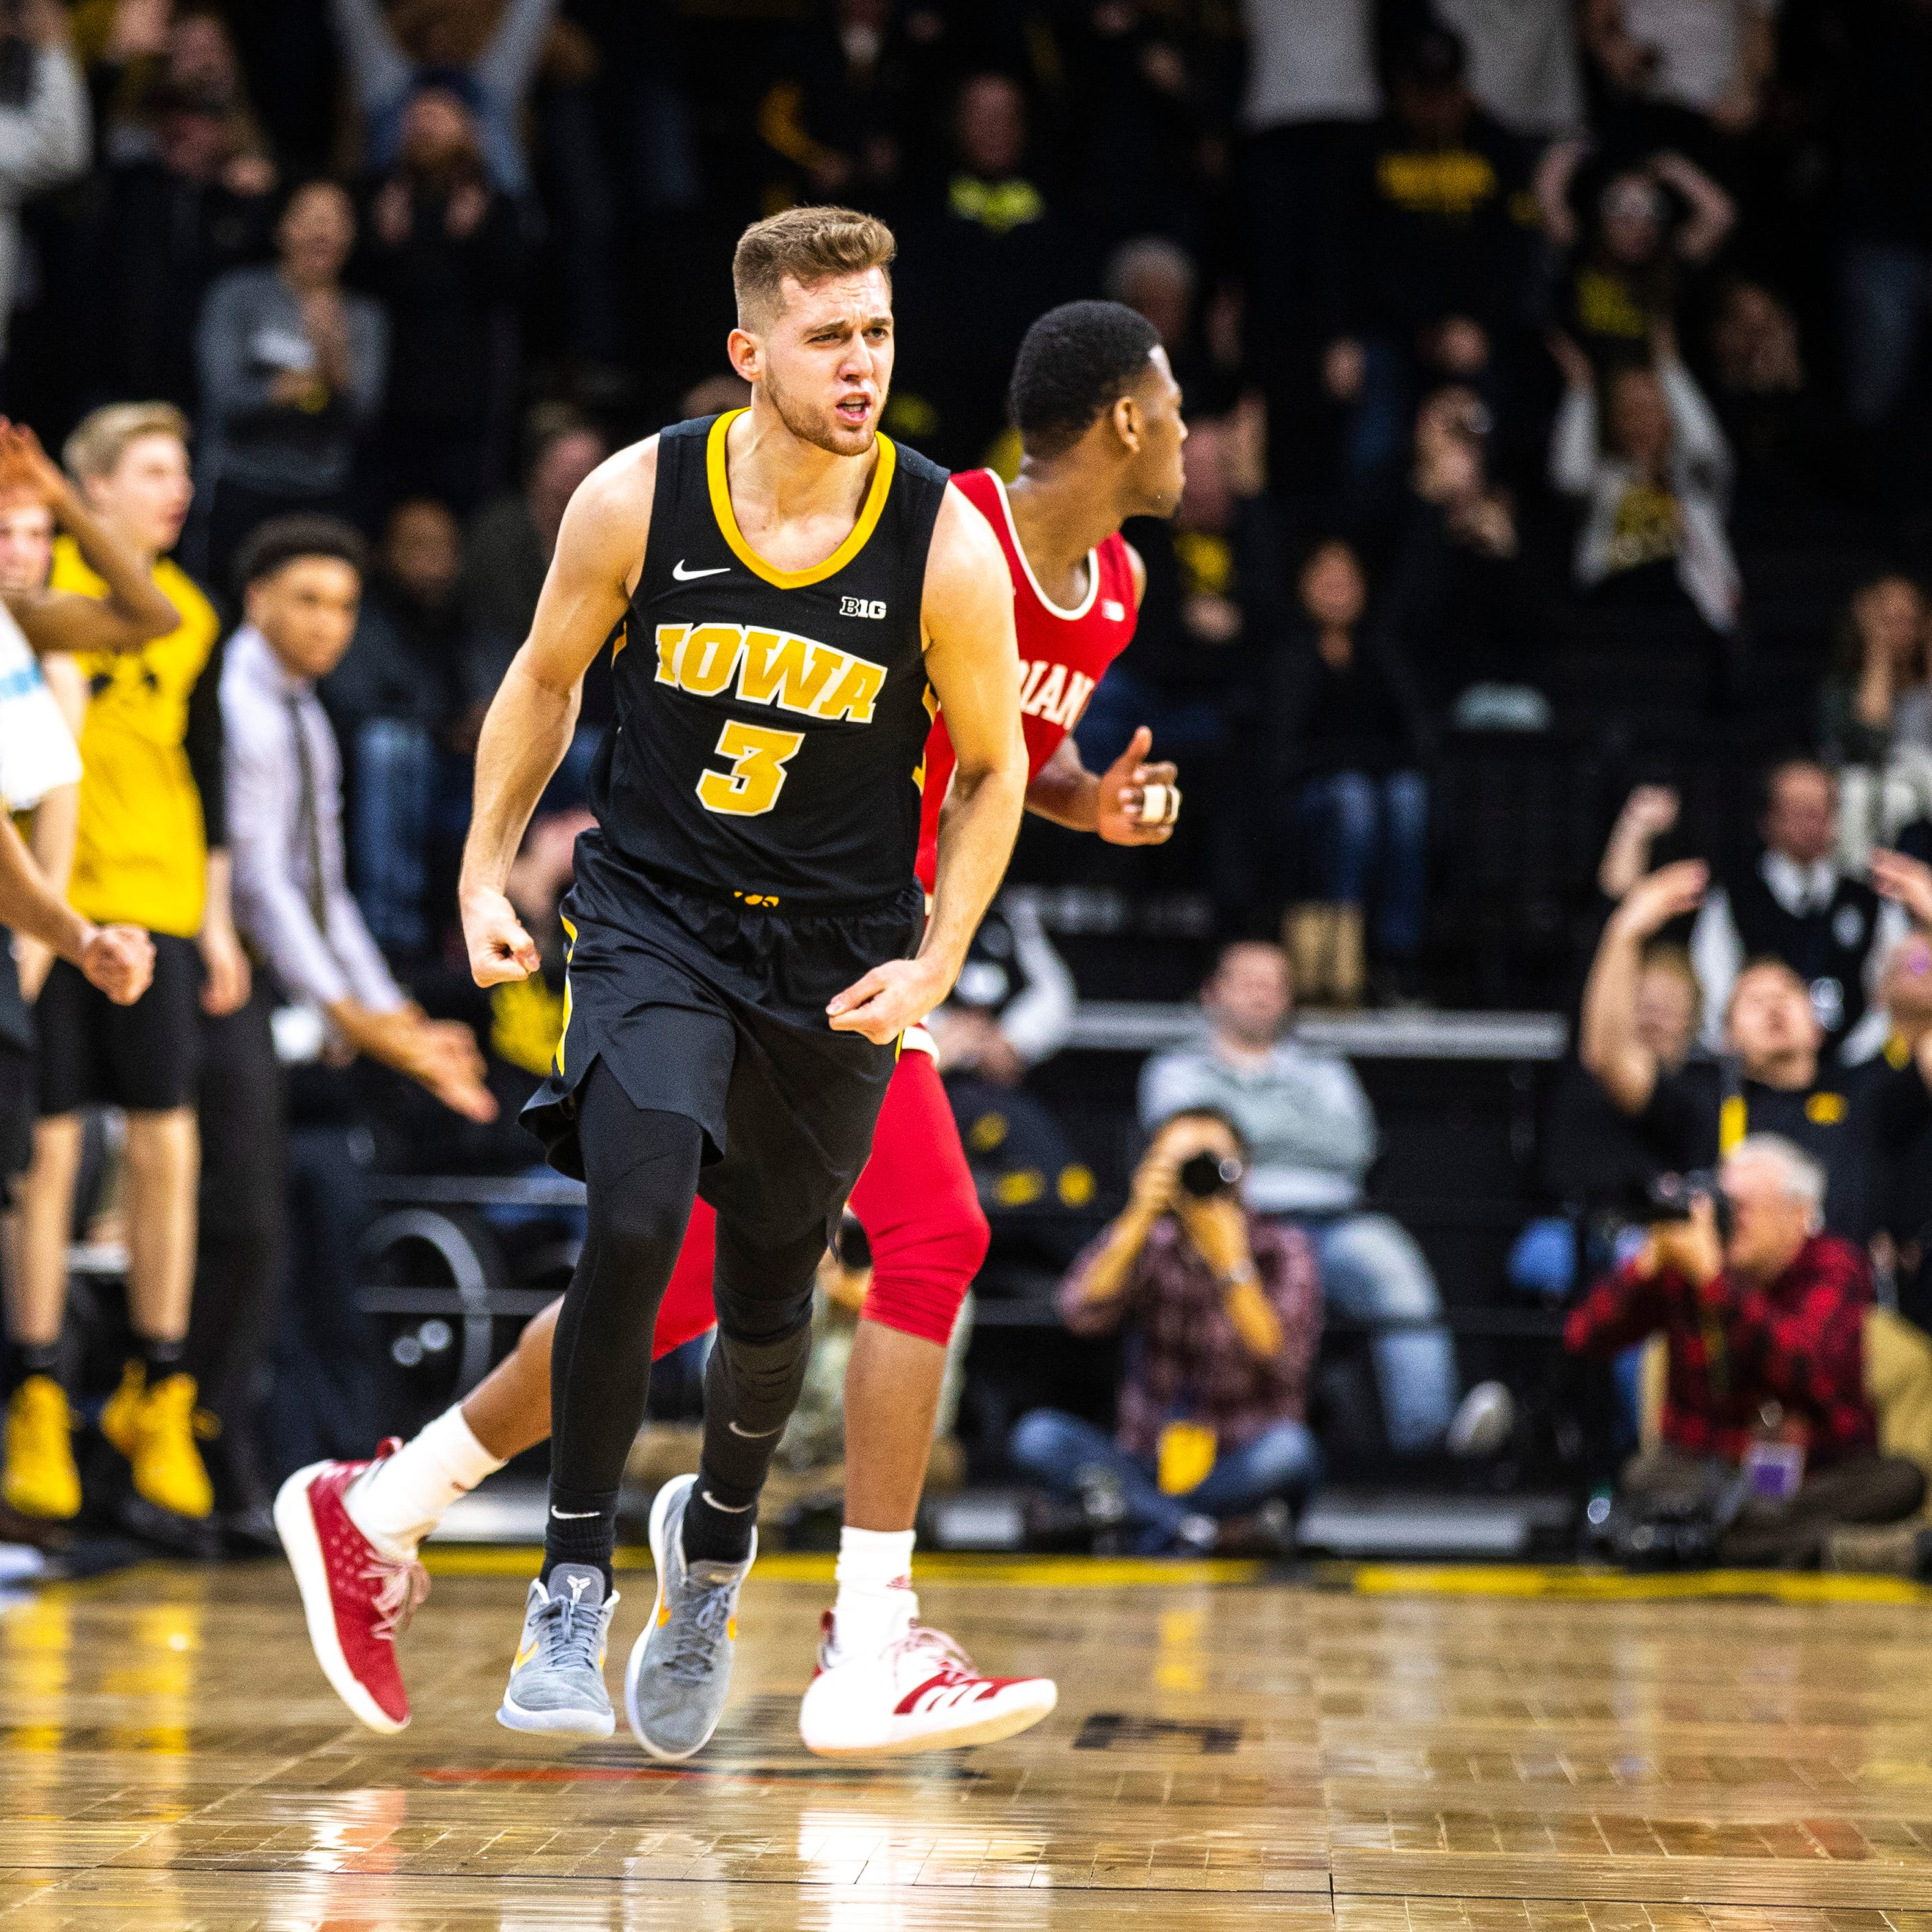 Jordan Bohannon rescues Iowa again in comeback win over Indiana